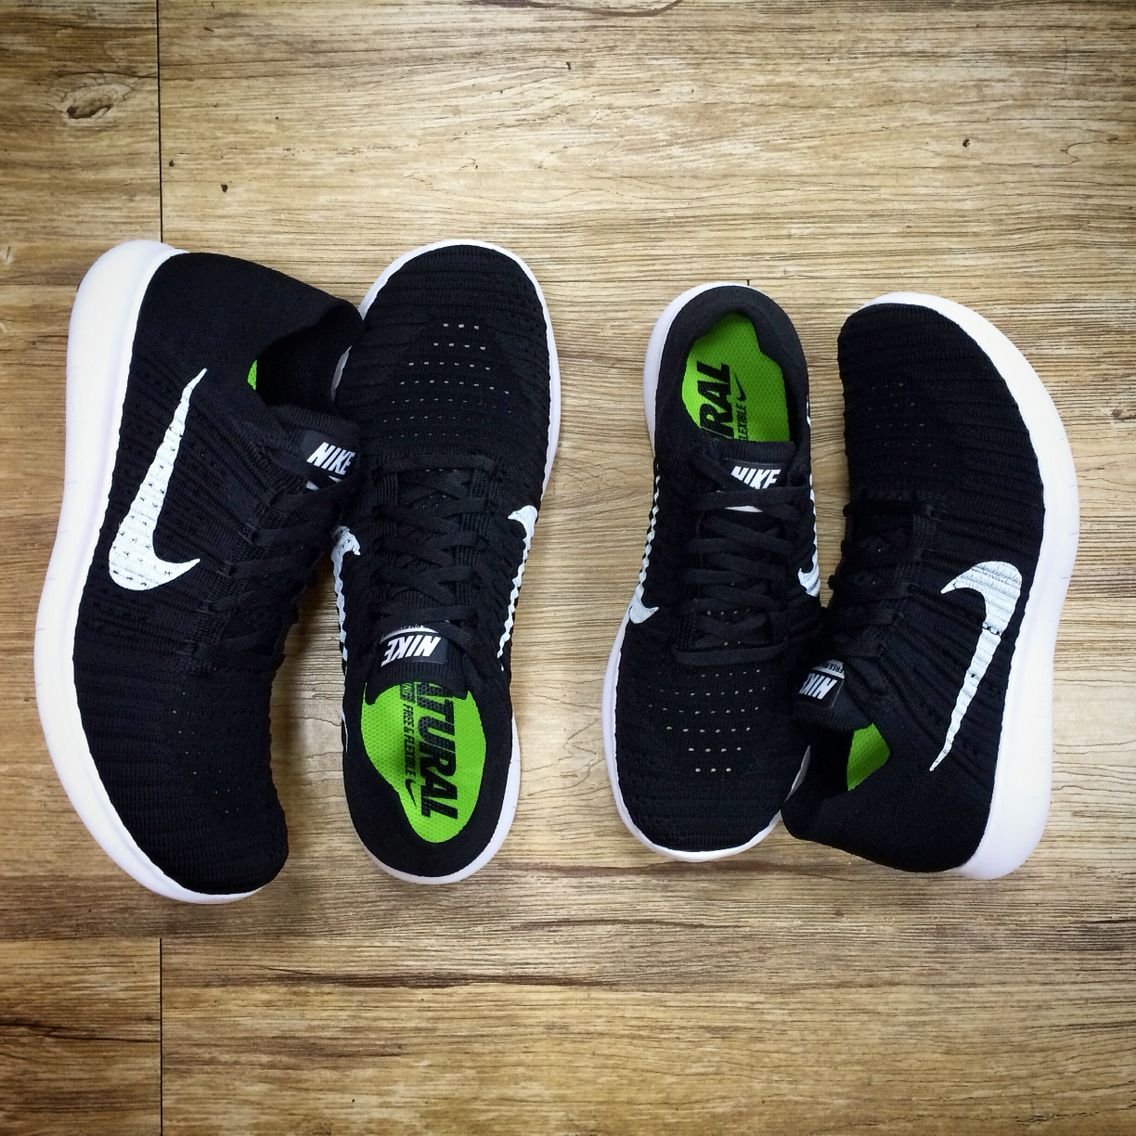 Nike Free RN Flyknit Run Black White Mens Running Shoes Trainers 831069-001